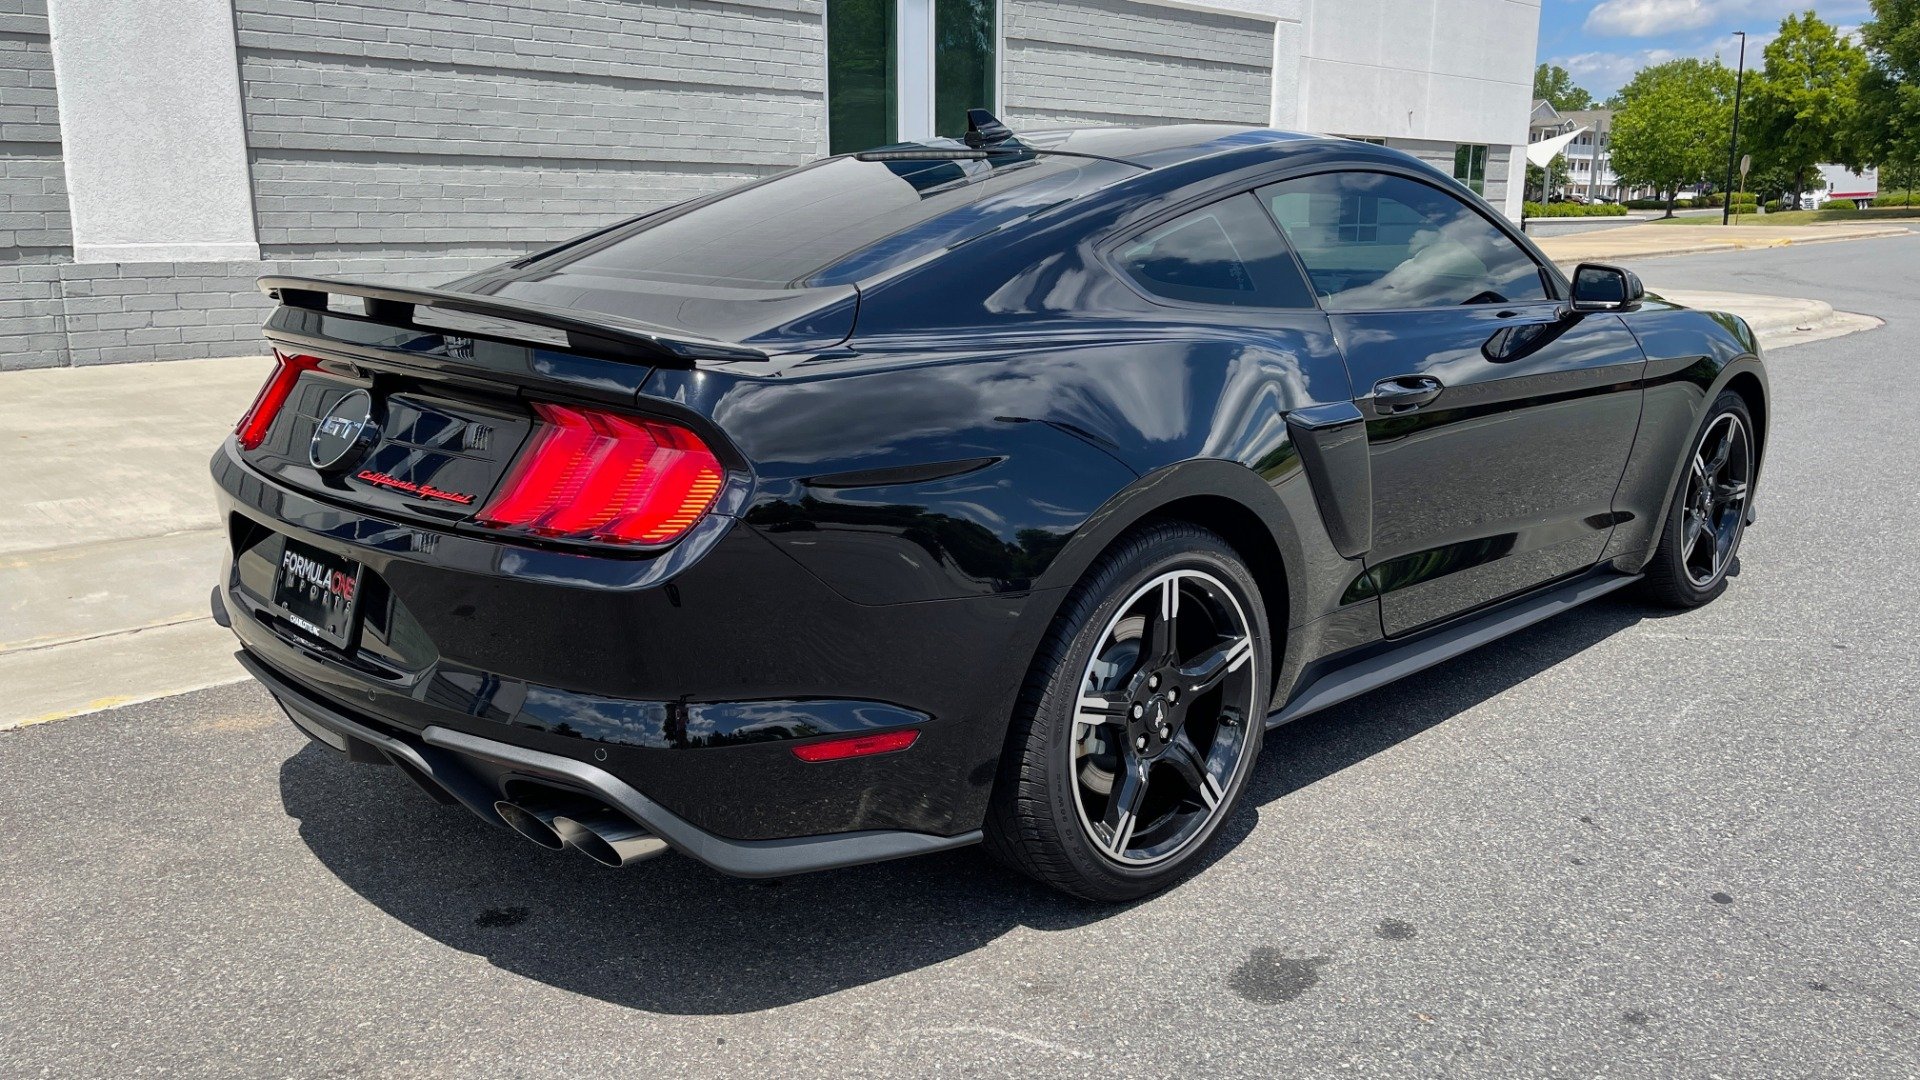 Used 2020 Ford MUSTANG GT PREMIUM / CALIFORNIA SPECIAL / 5.0L V8 / 6-SPD MAN for sale Sold at Formula Imports in Charlotte NC 28227 5